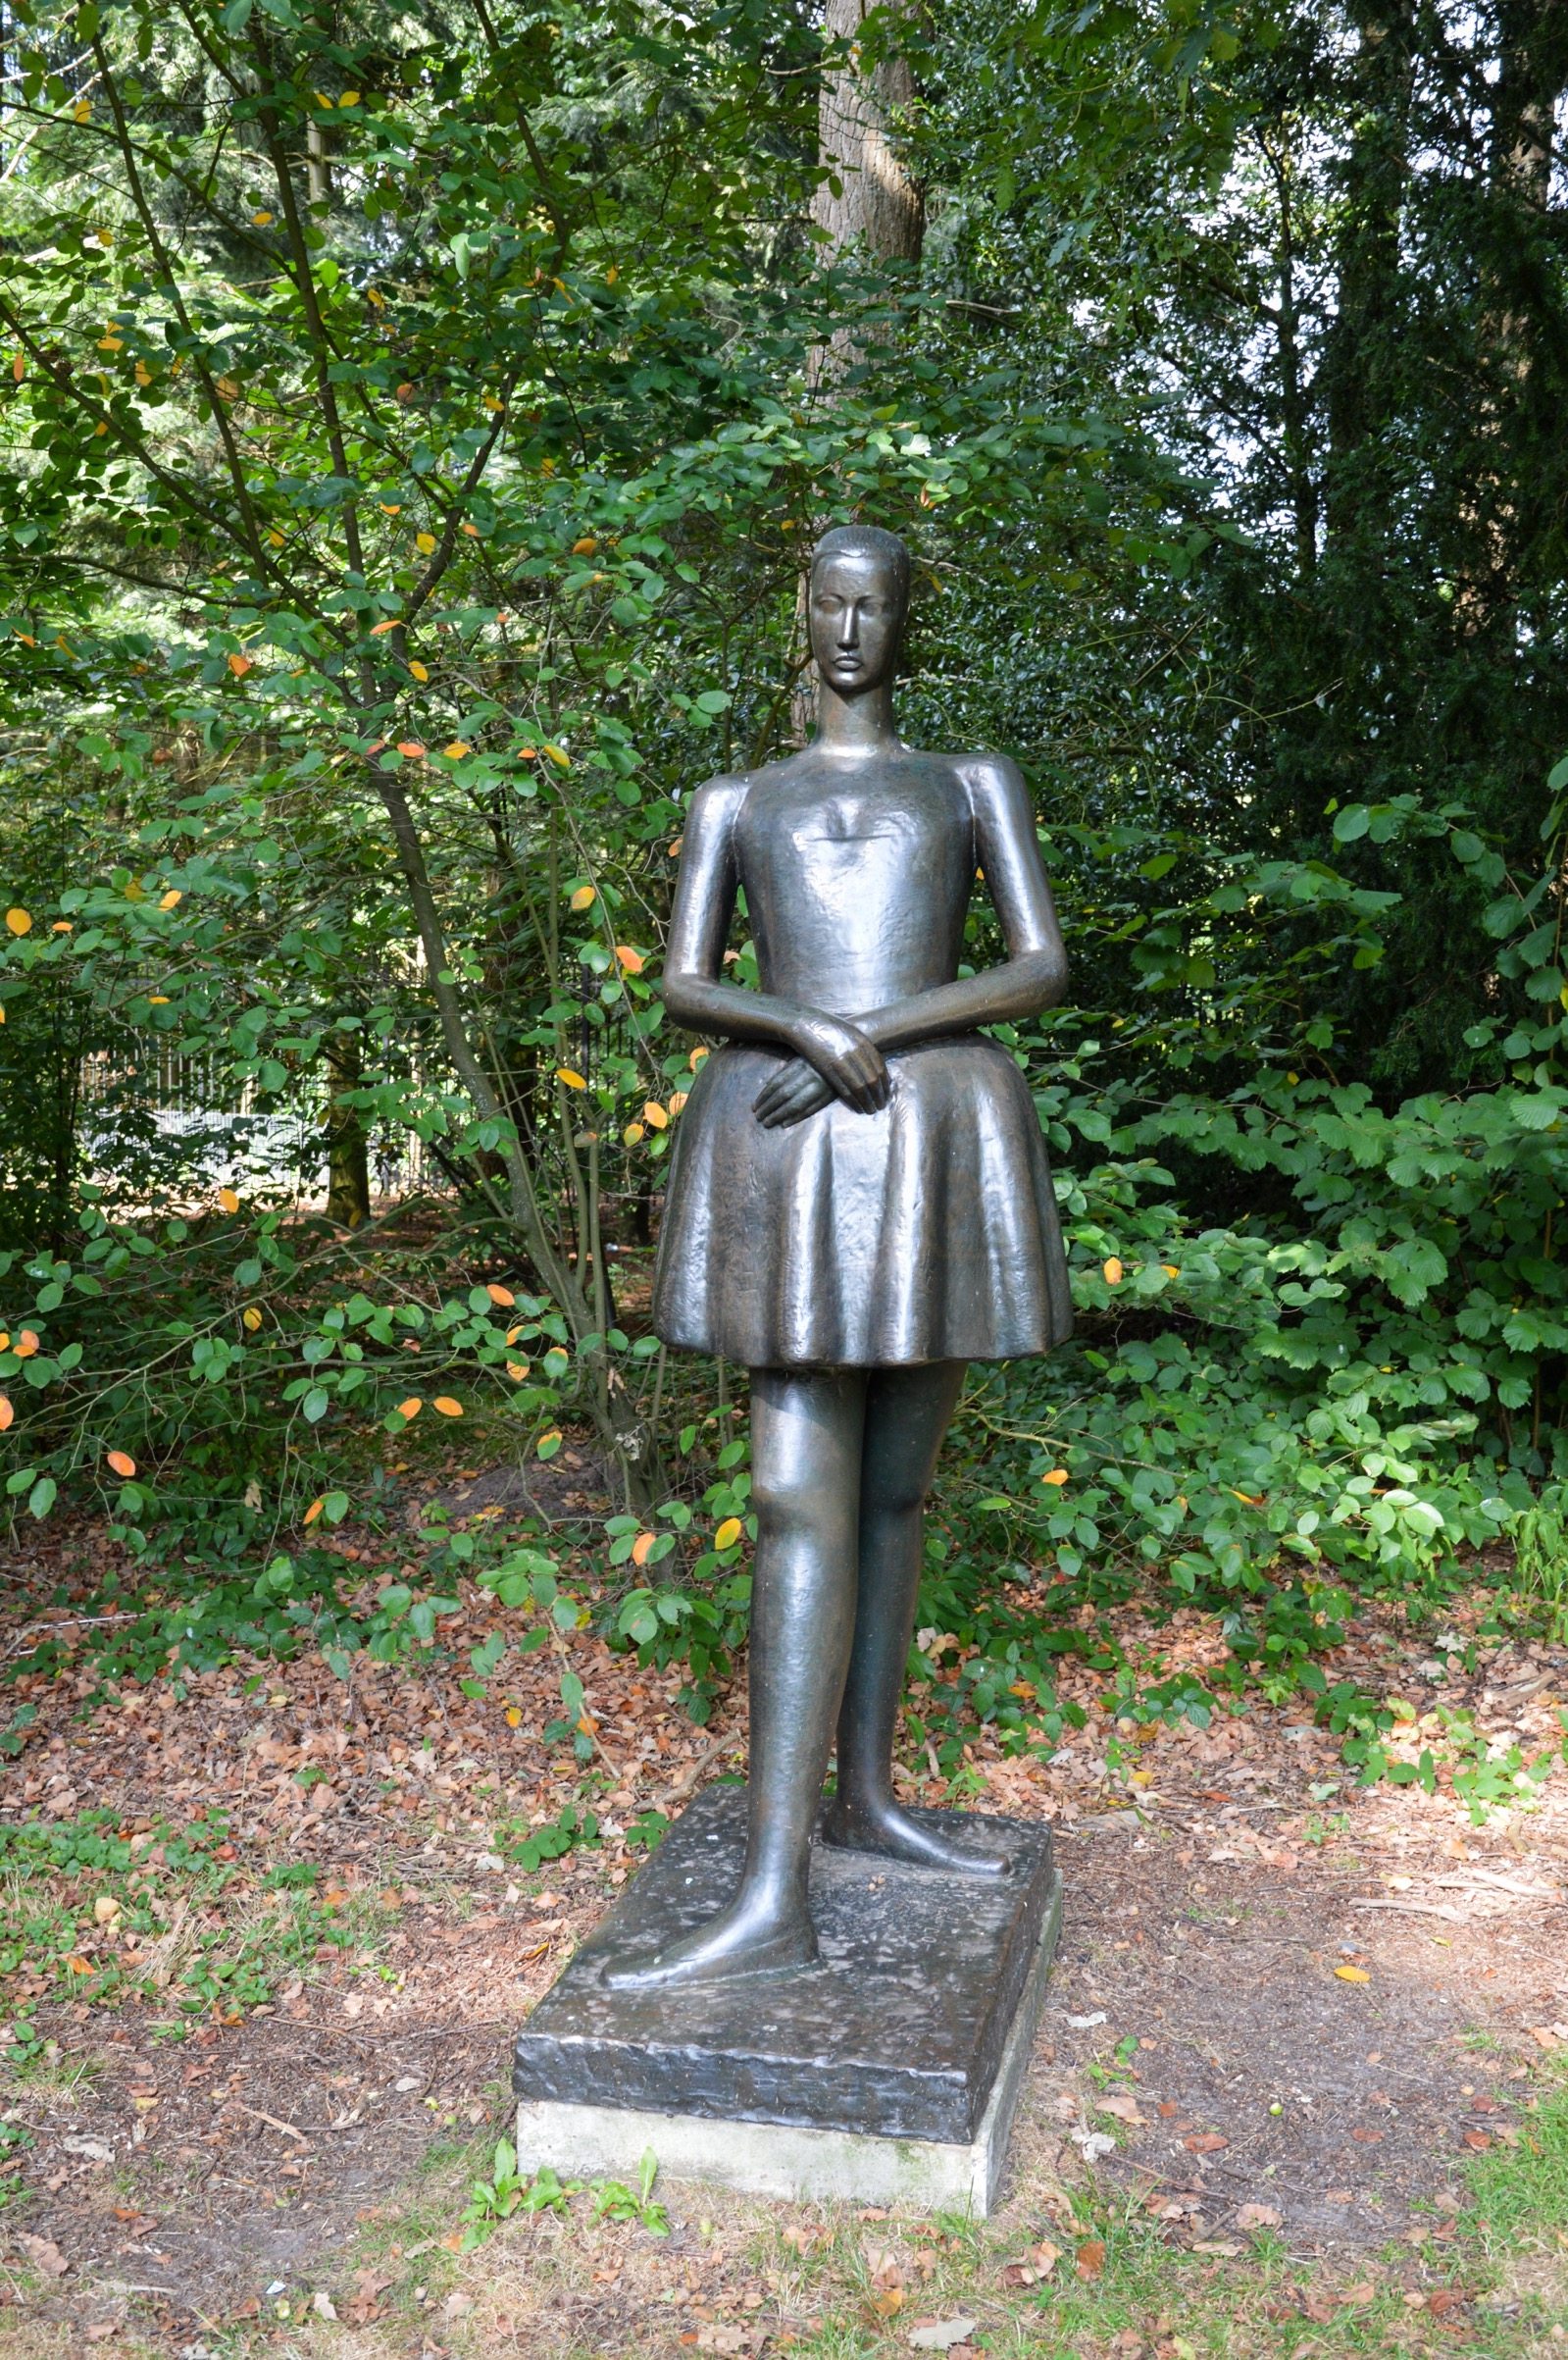 Kröller-Müller Museum Sculpture Garden, the Netherlands